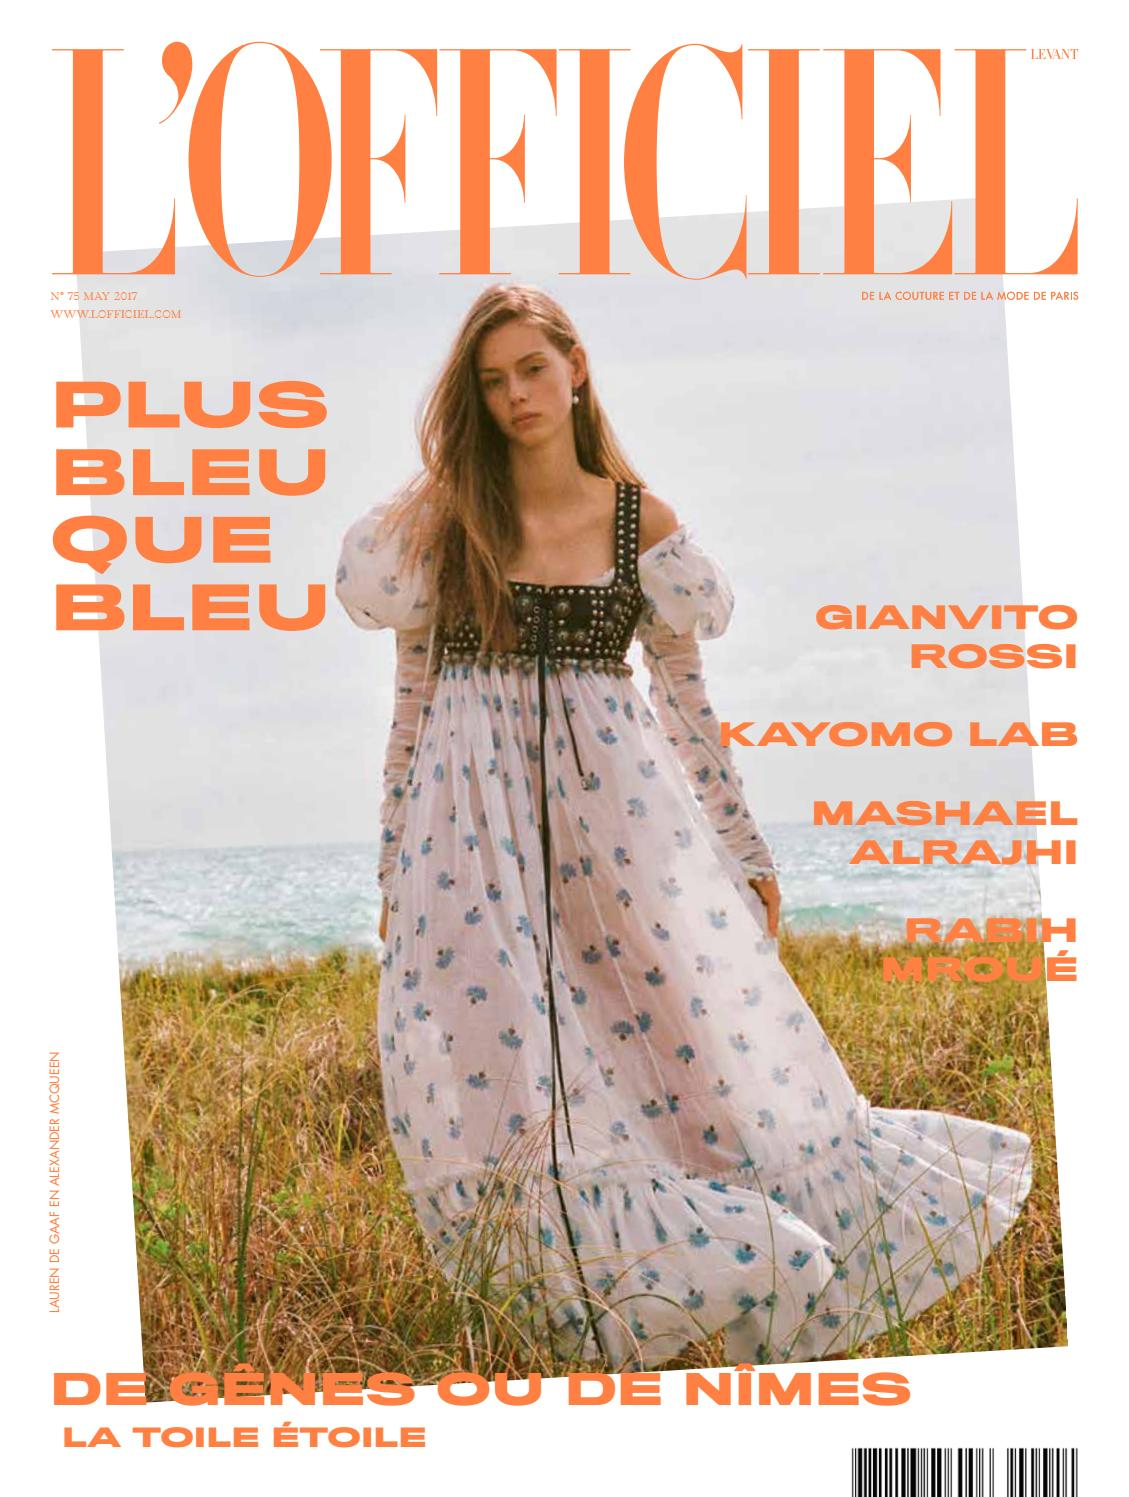 L Officiel-Levant, May Issue 75 by L Officiel Levant - issuu 49dd8e404f02